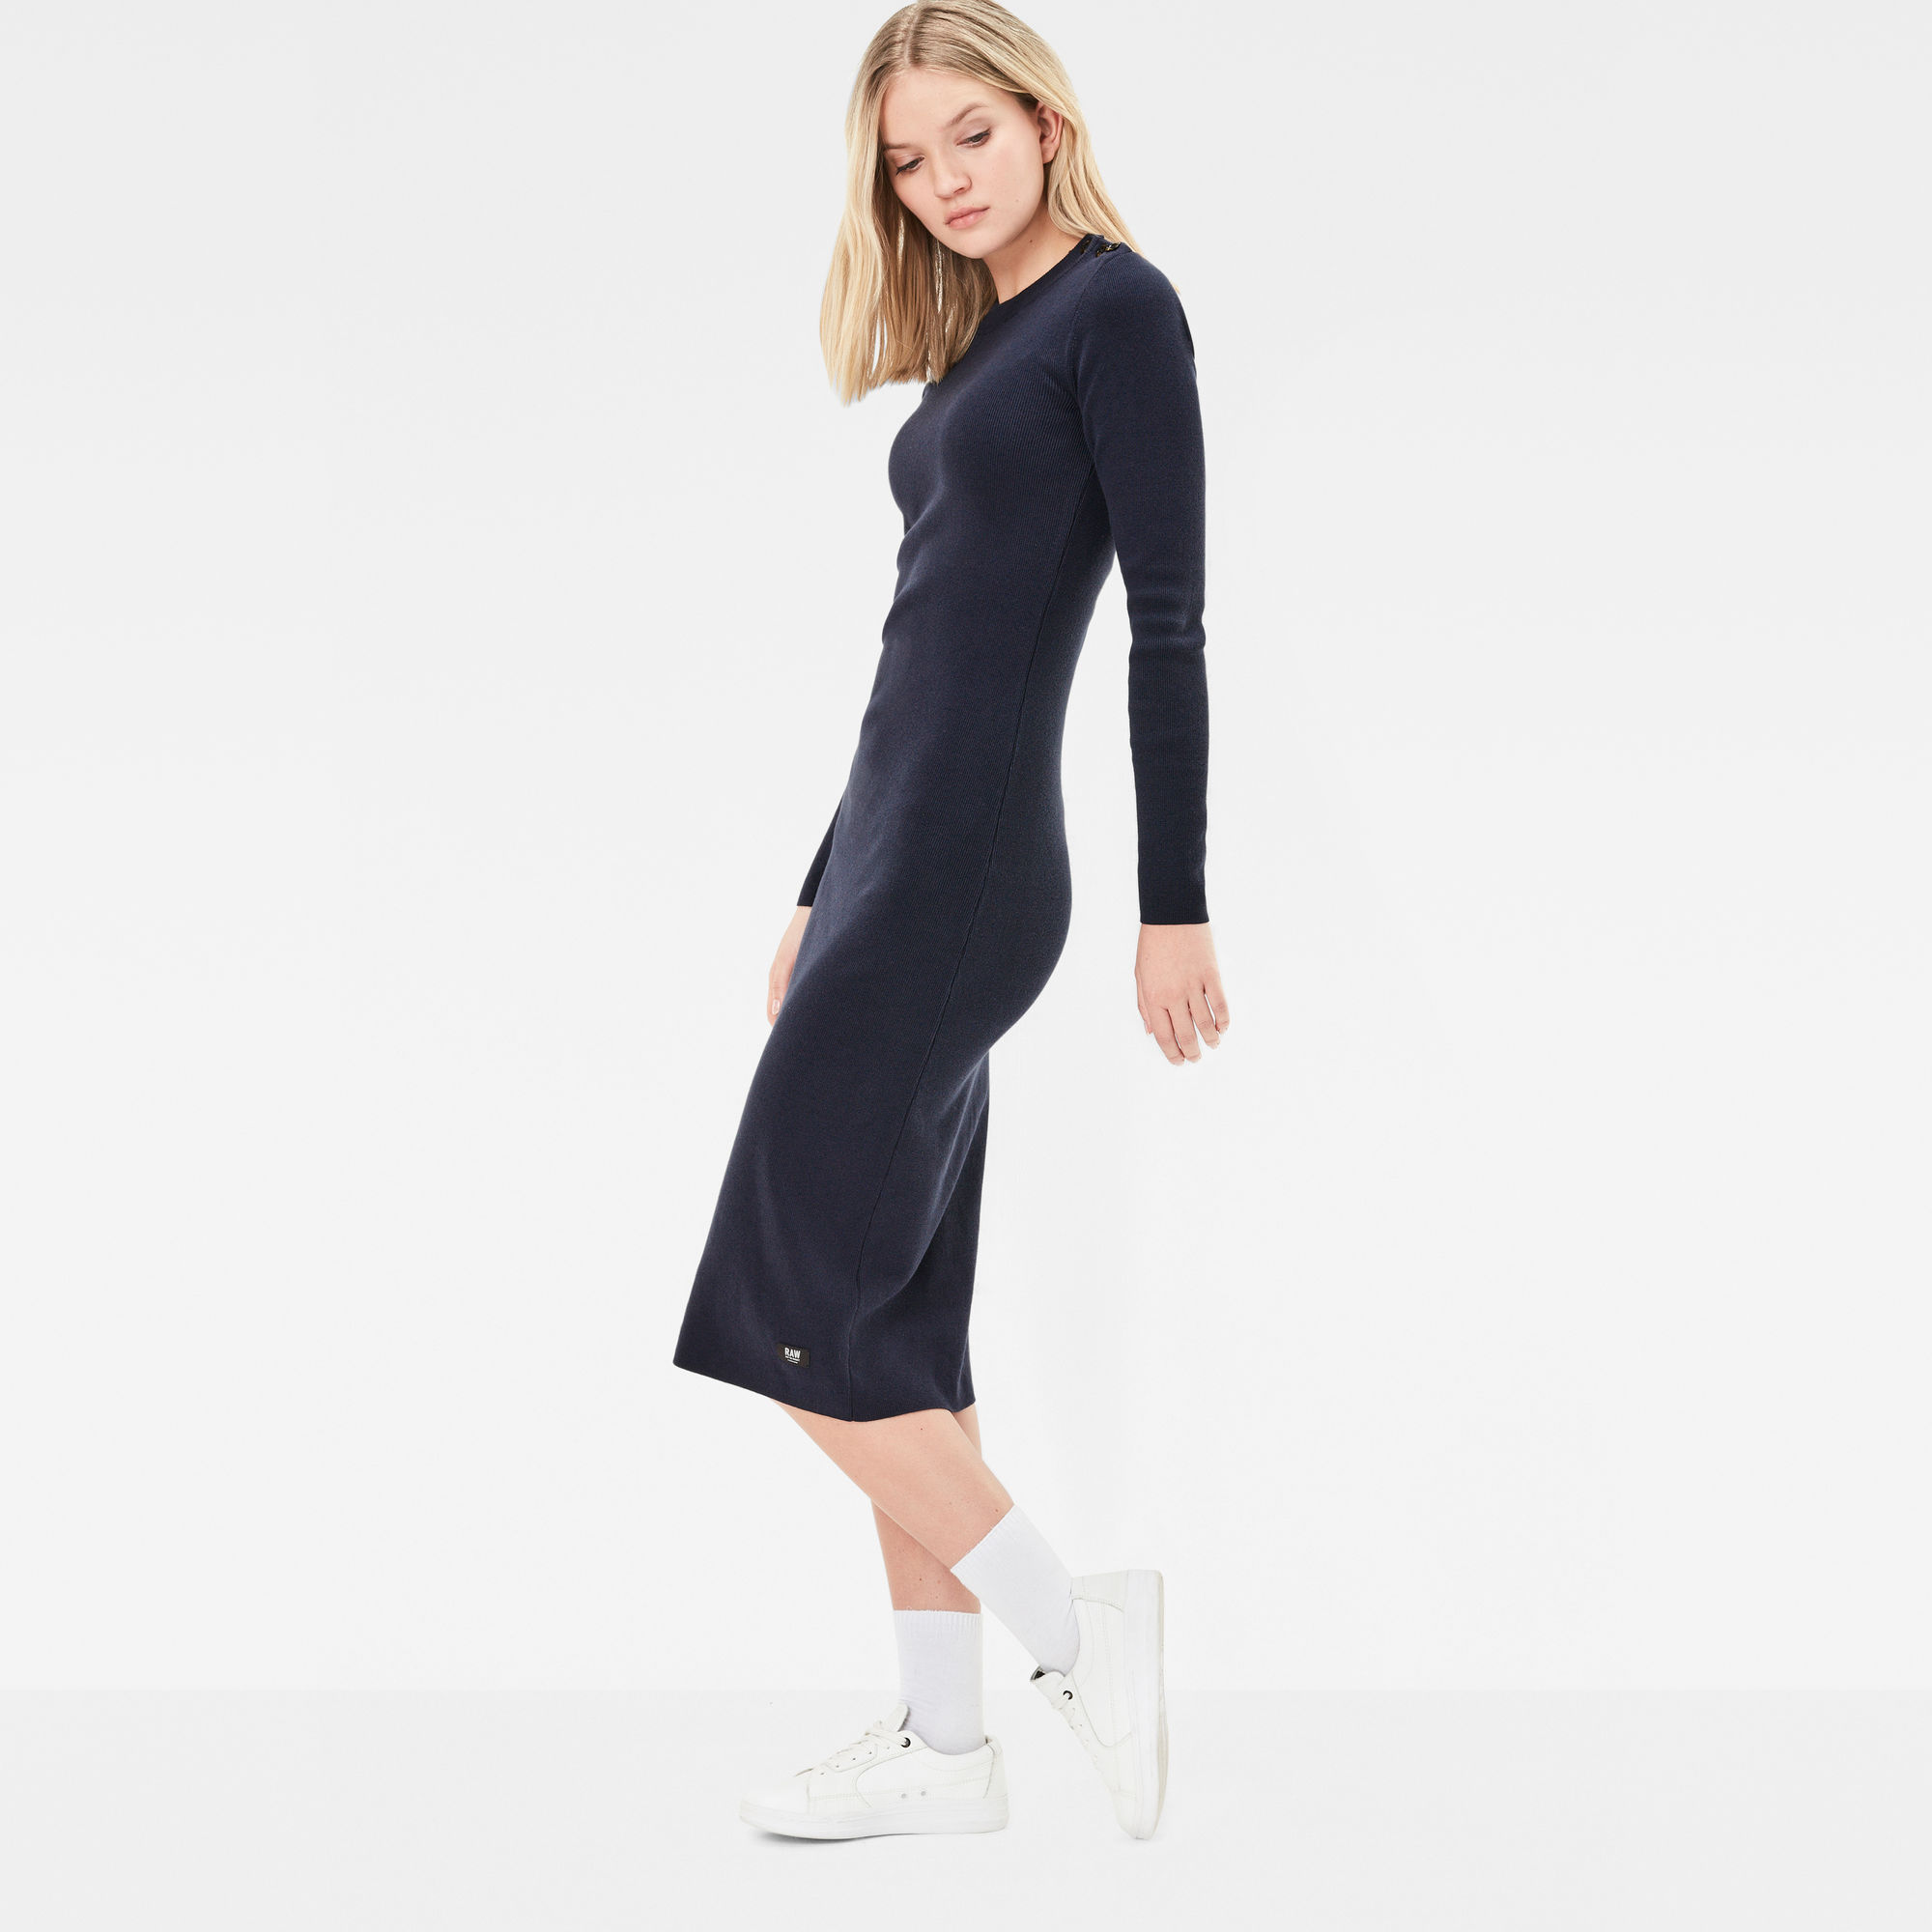 Exly Slim Knit Dress